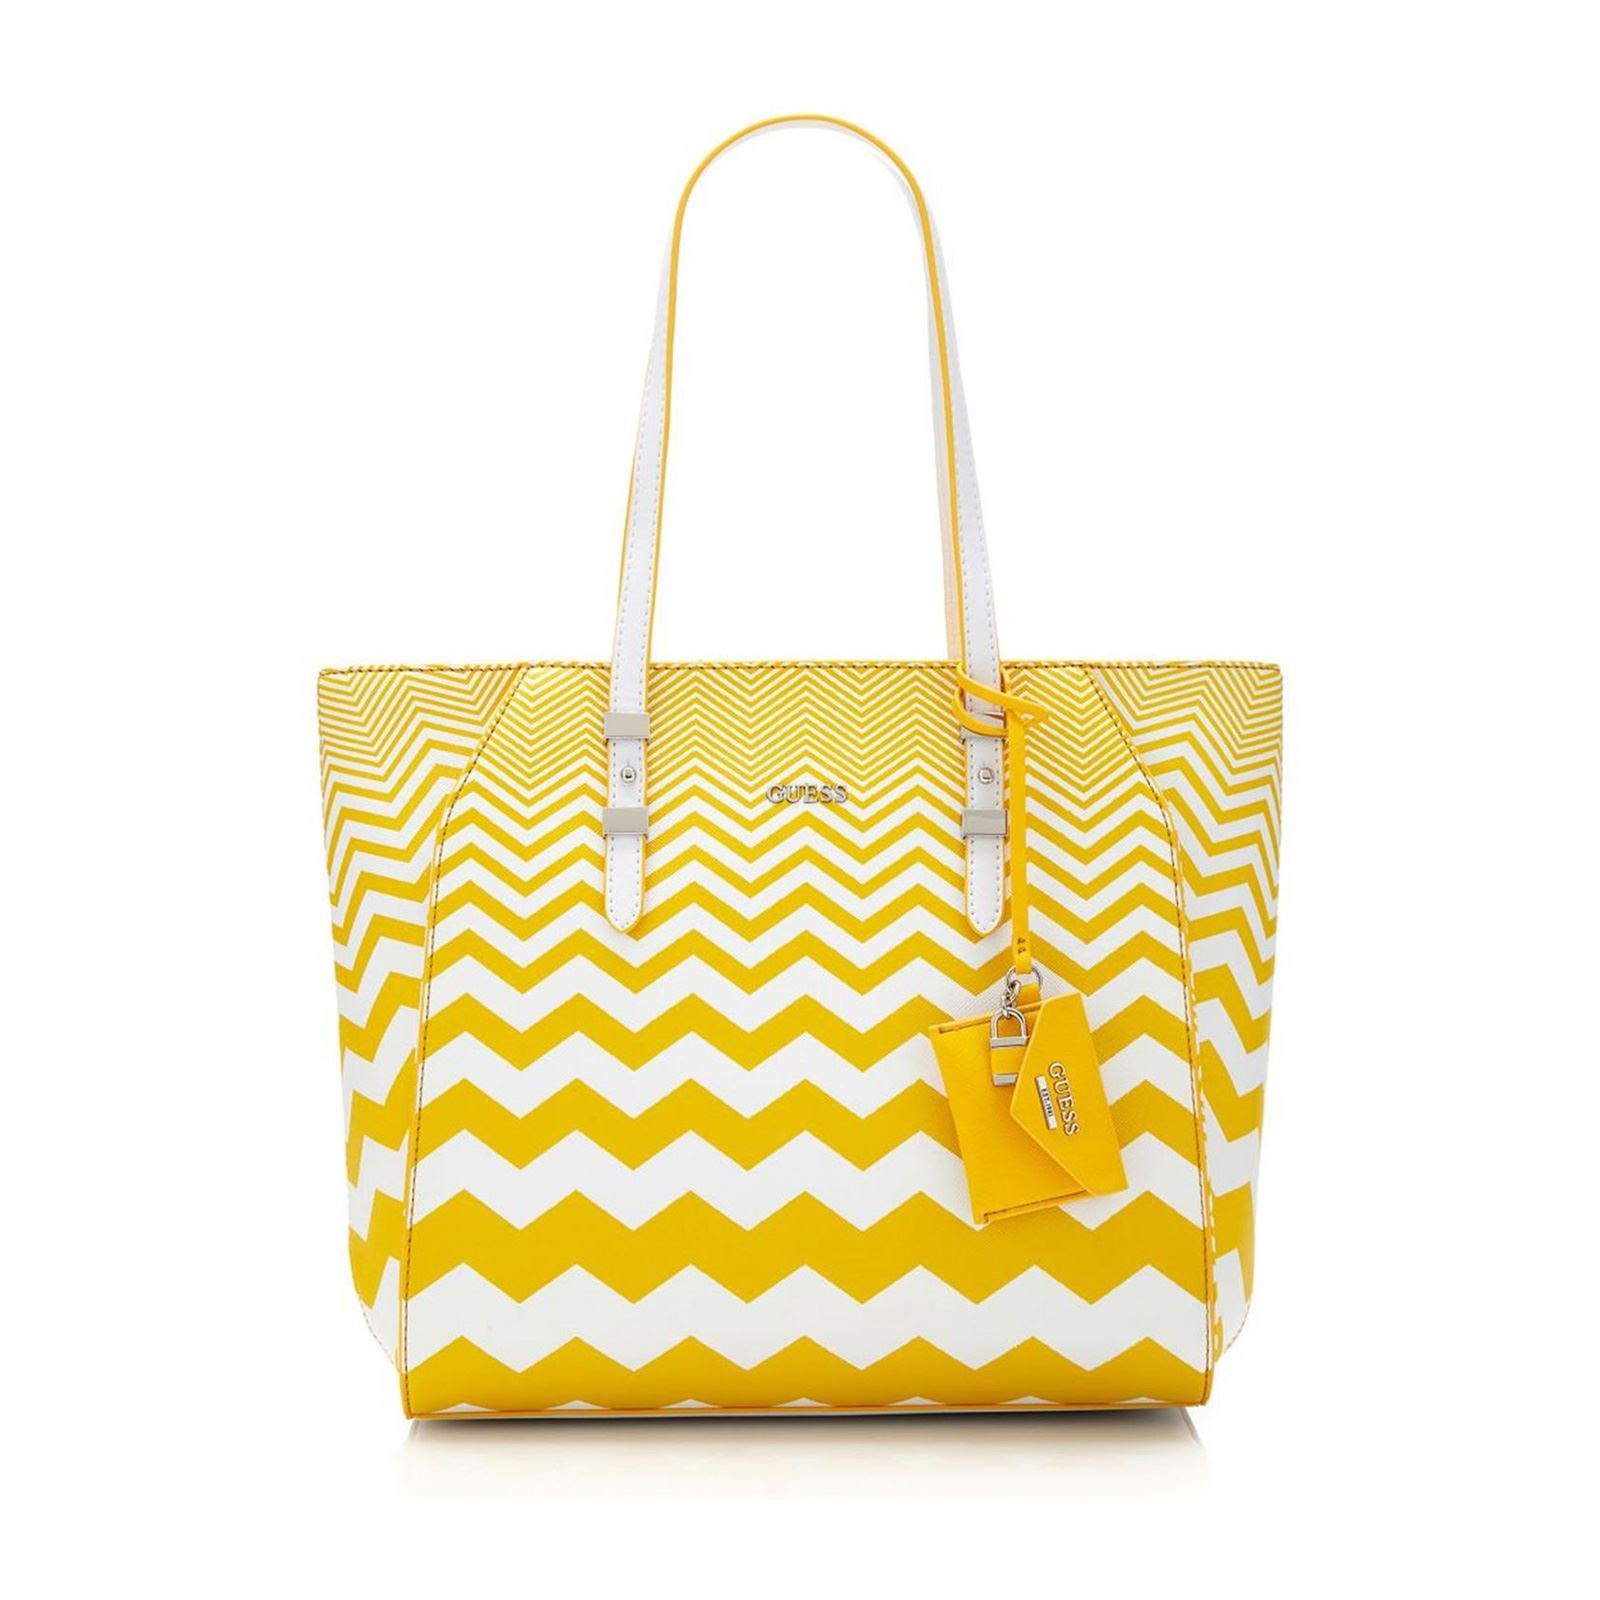 be3adcc4cf0b5 Guess Gia - Sac cabas - jaune   BrandAlley